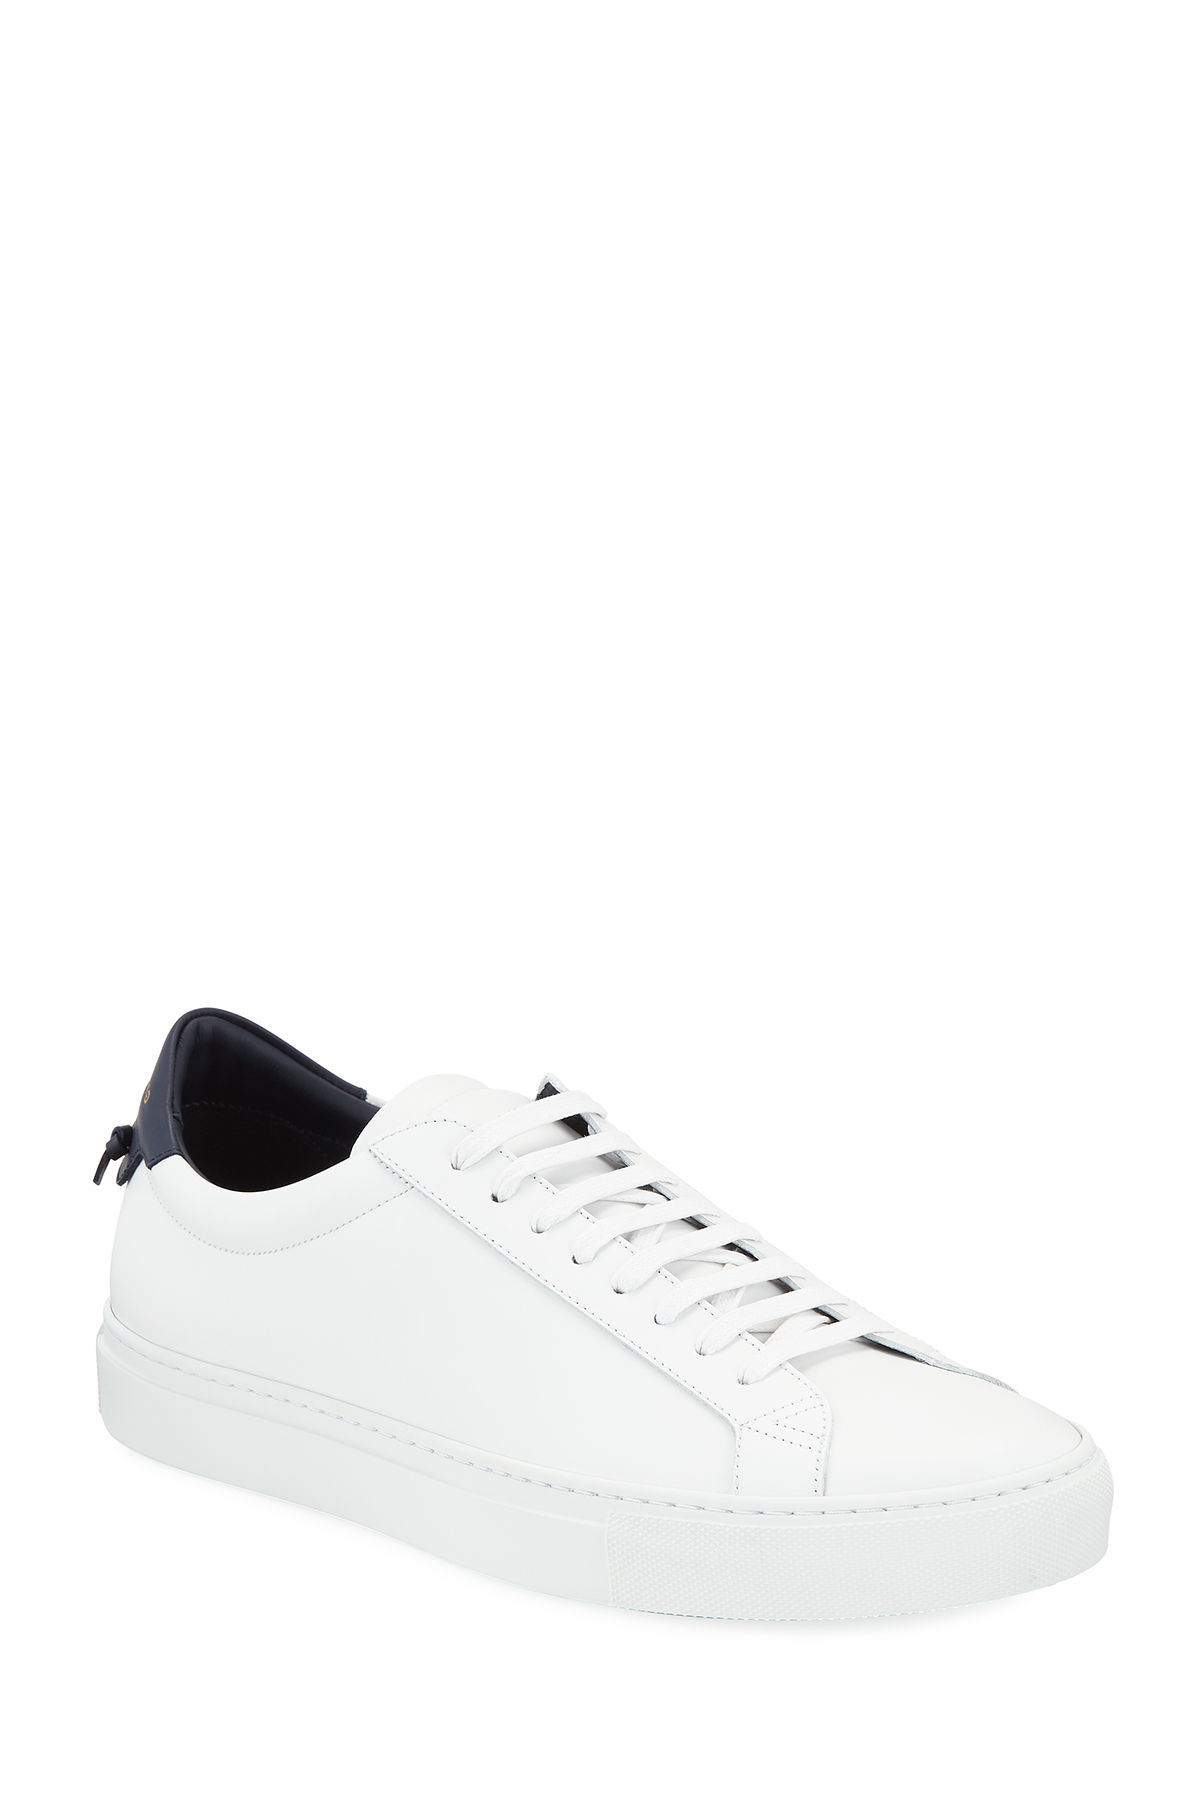 ec6d012ab2e Givenchy Men s Urban Street Leather Low-Top Sneakers